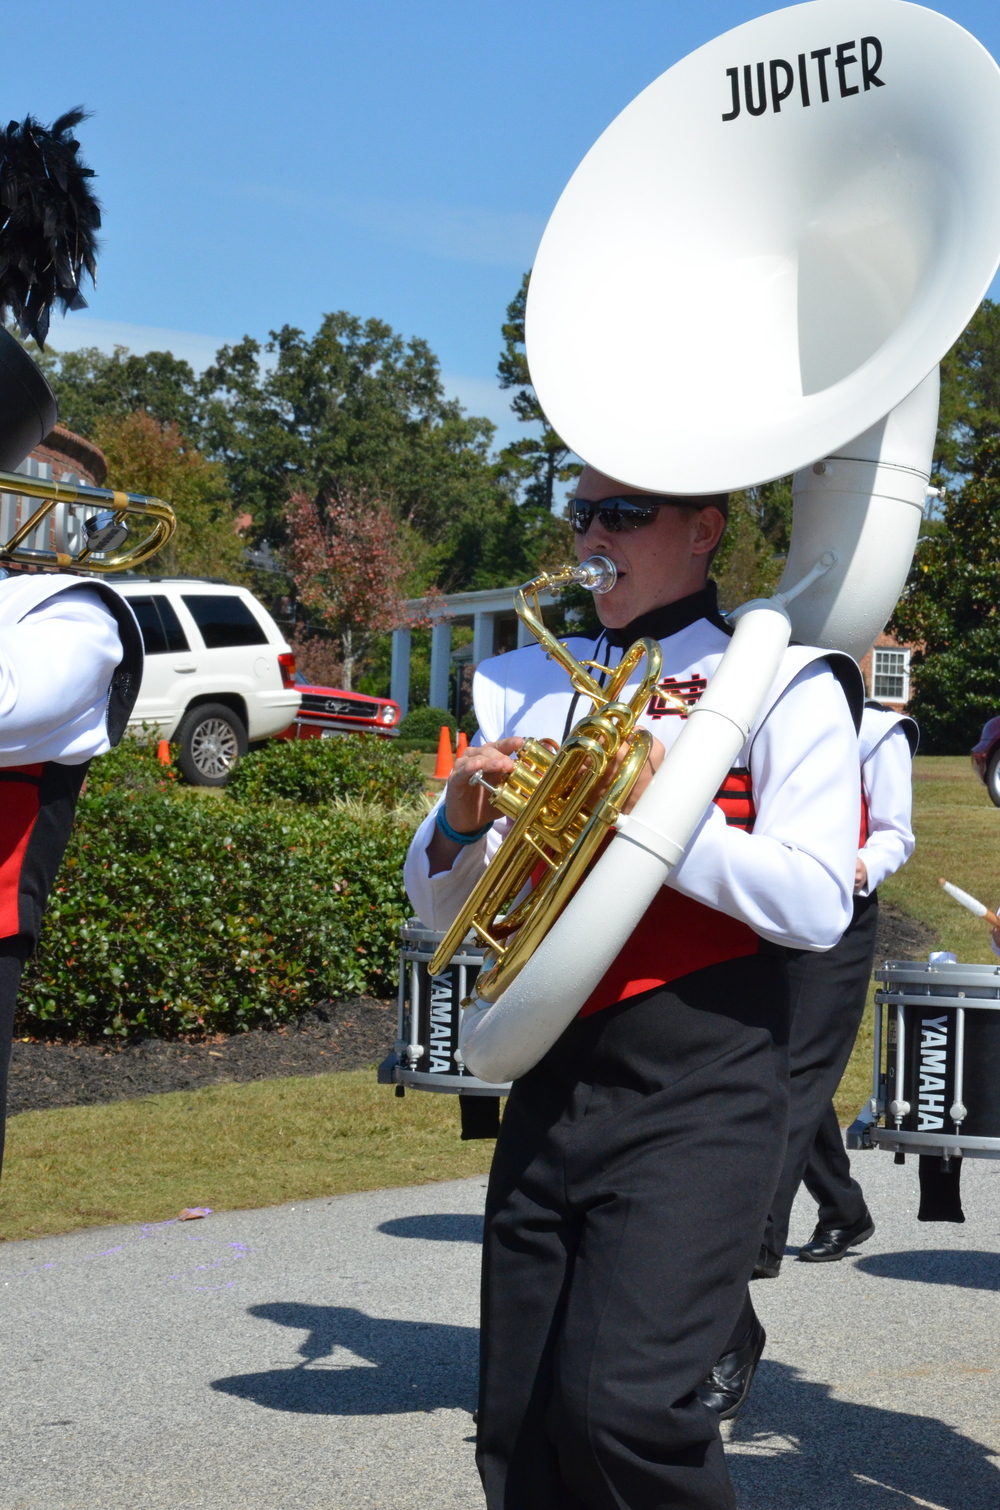 This tuba player is walking with pride, happy to represent NGU.